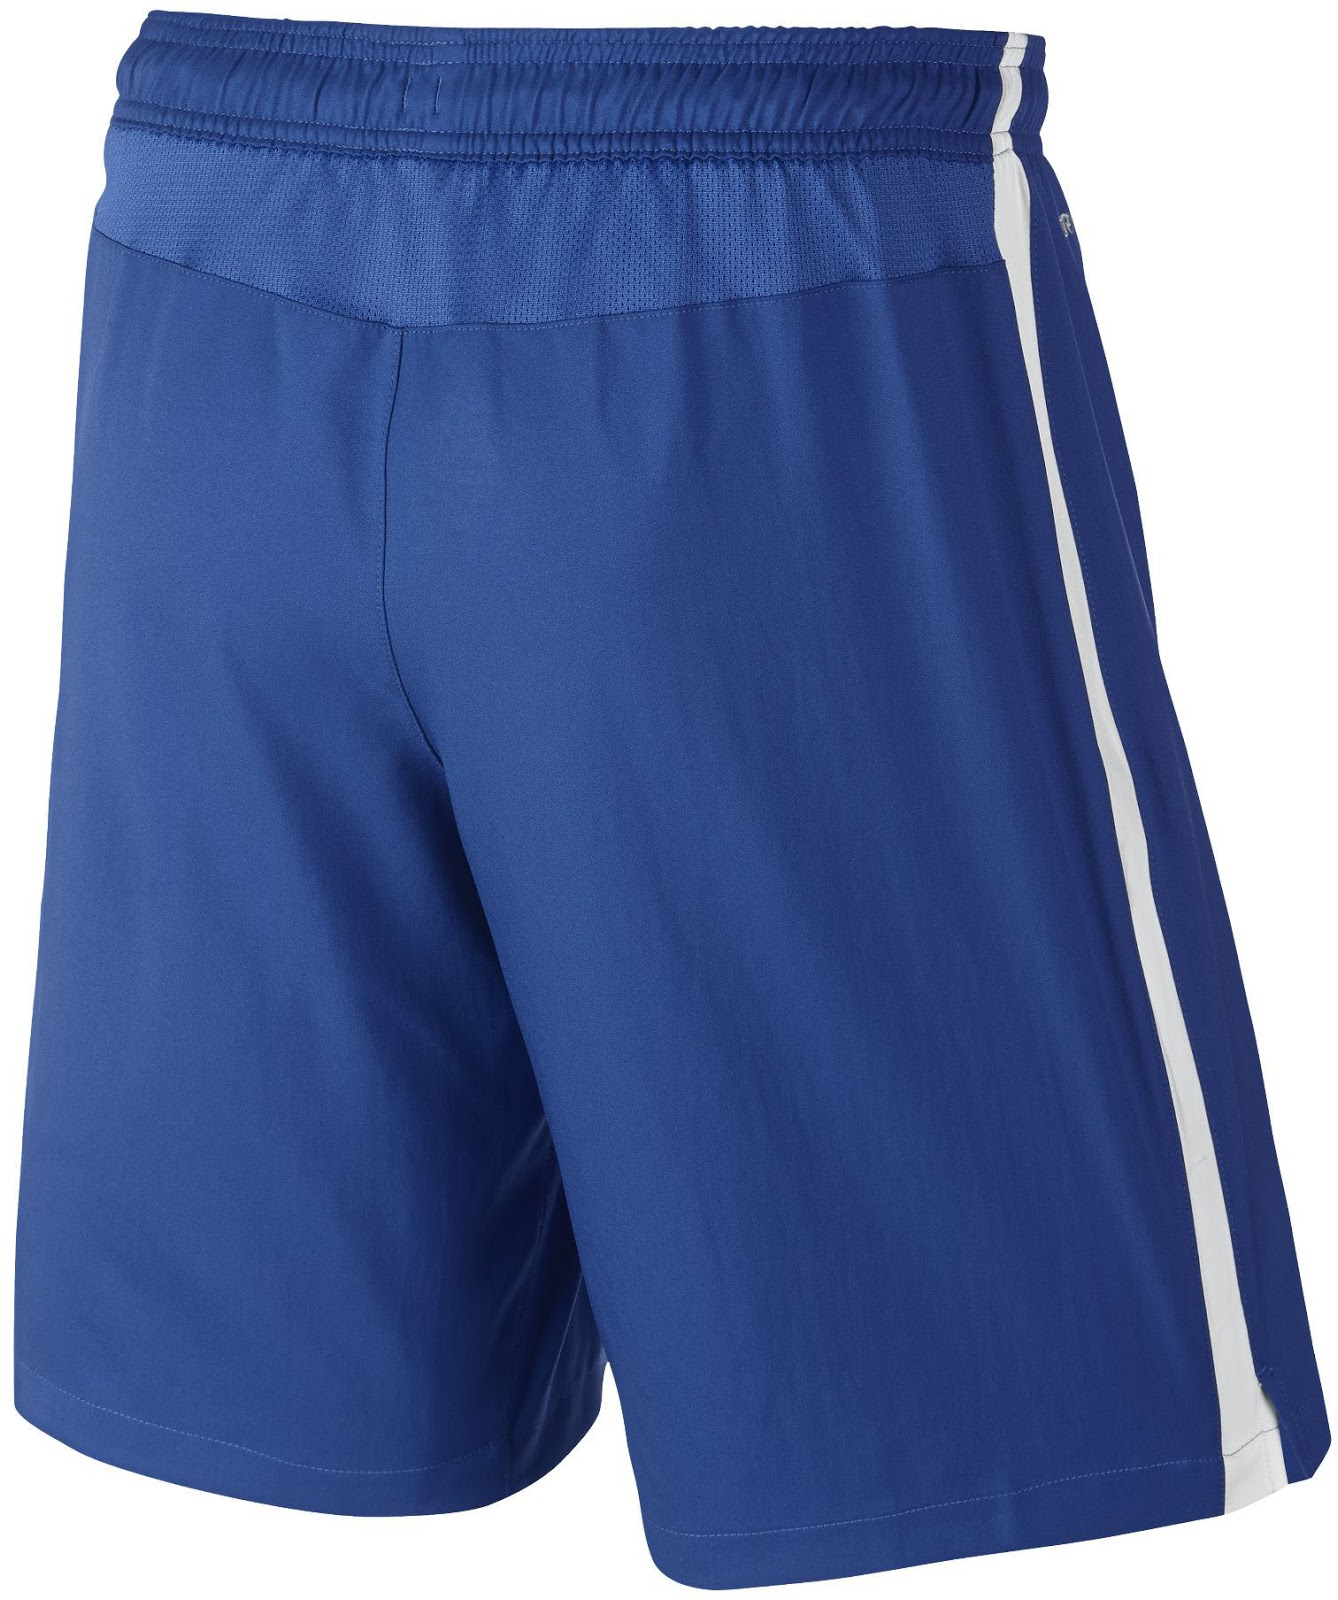 Brazil 2014 Home Kit Shorts 1 (1)